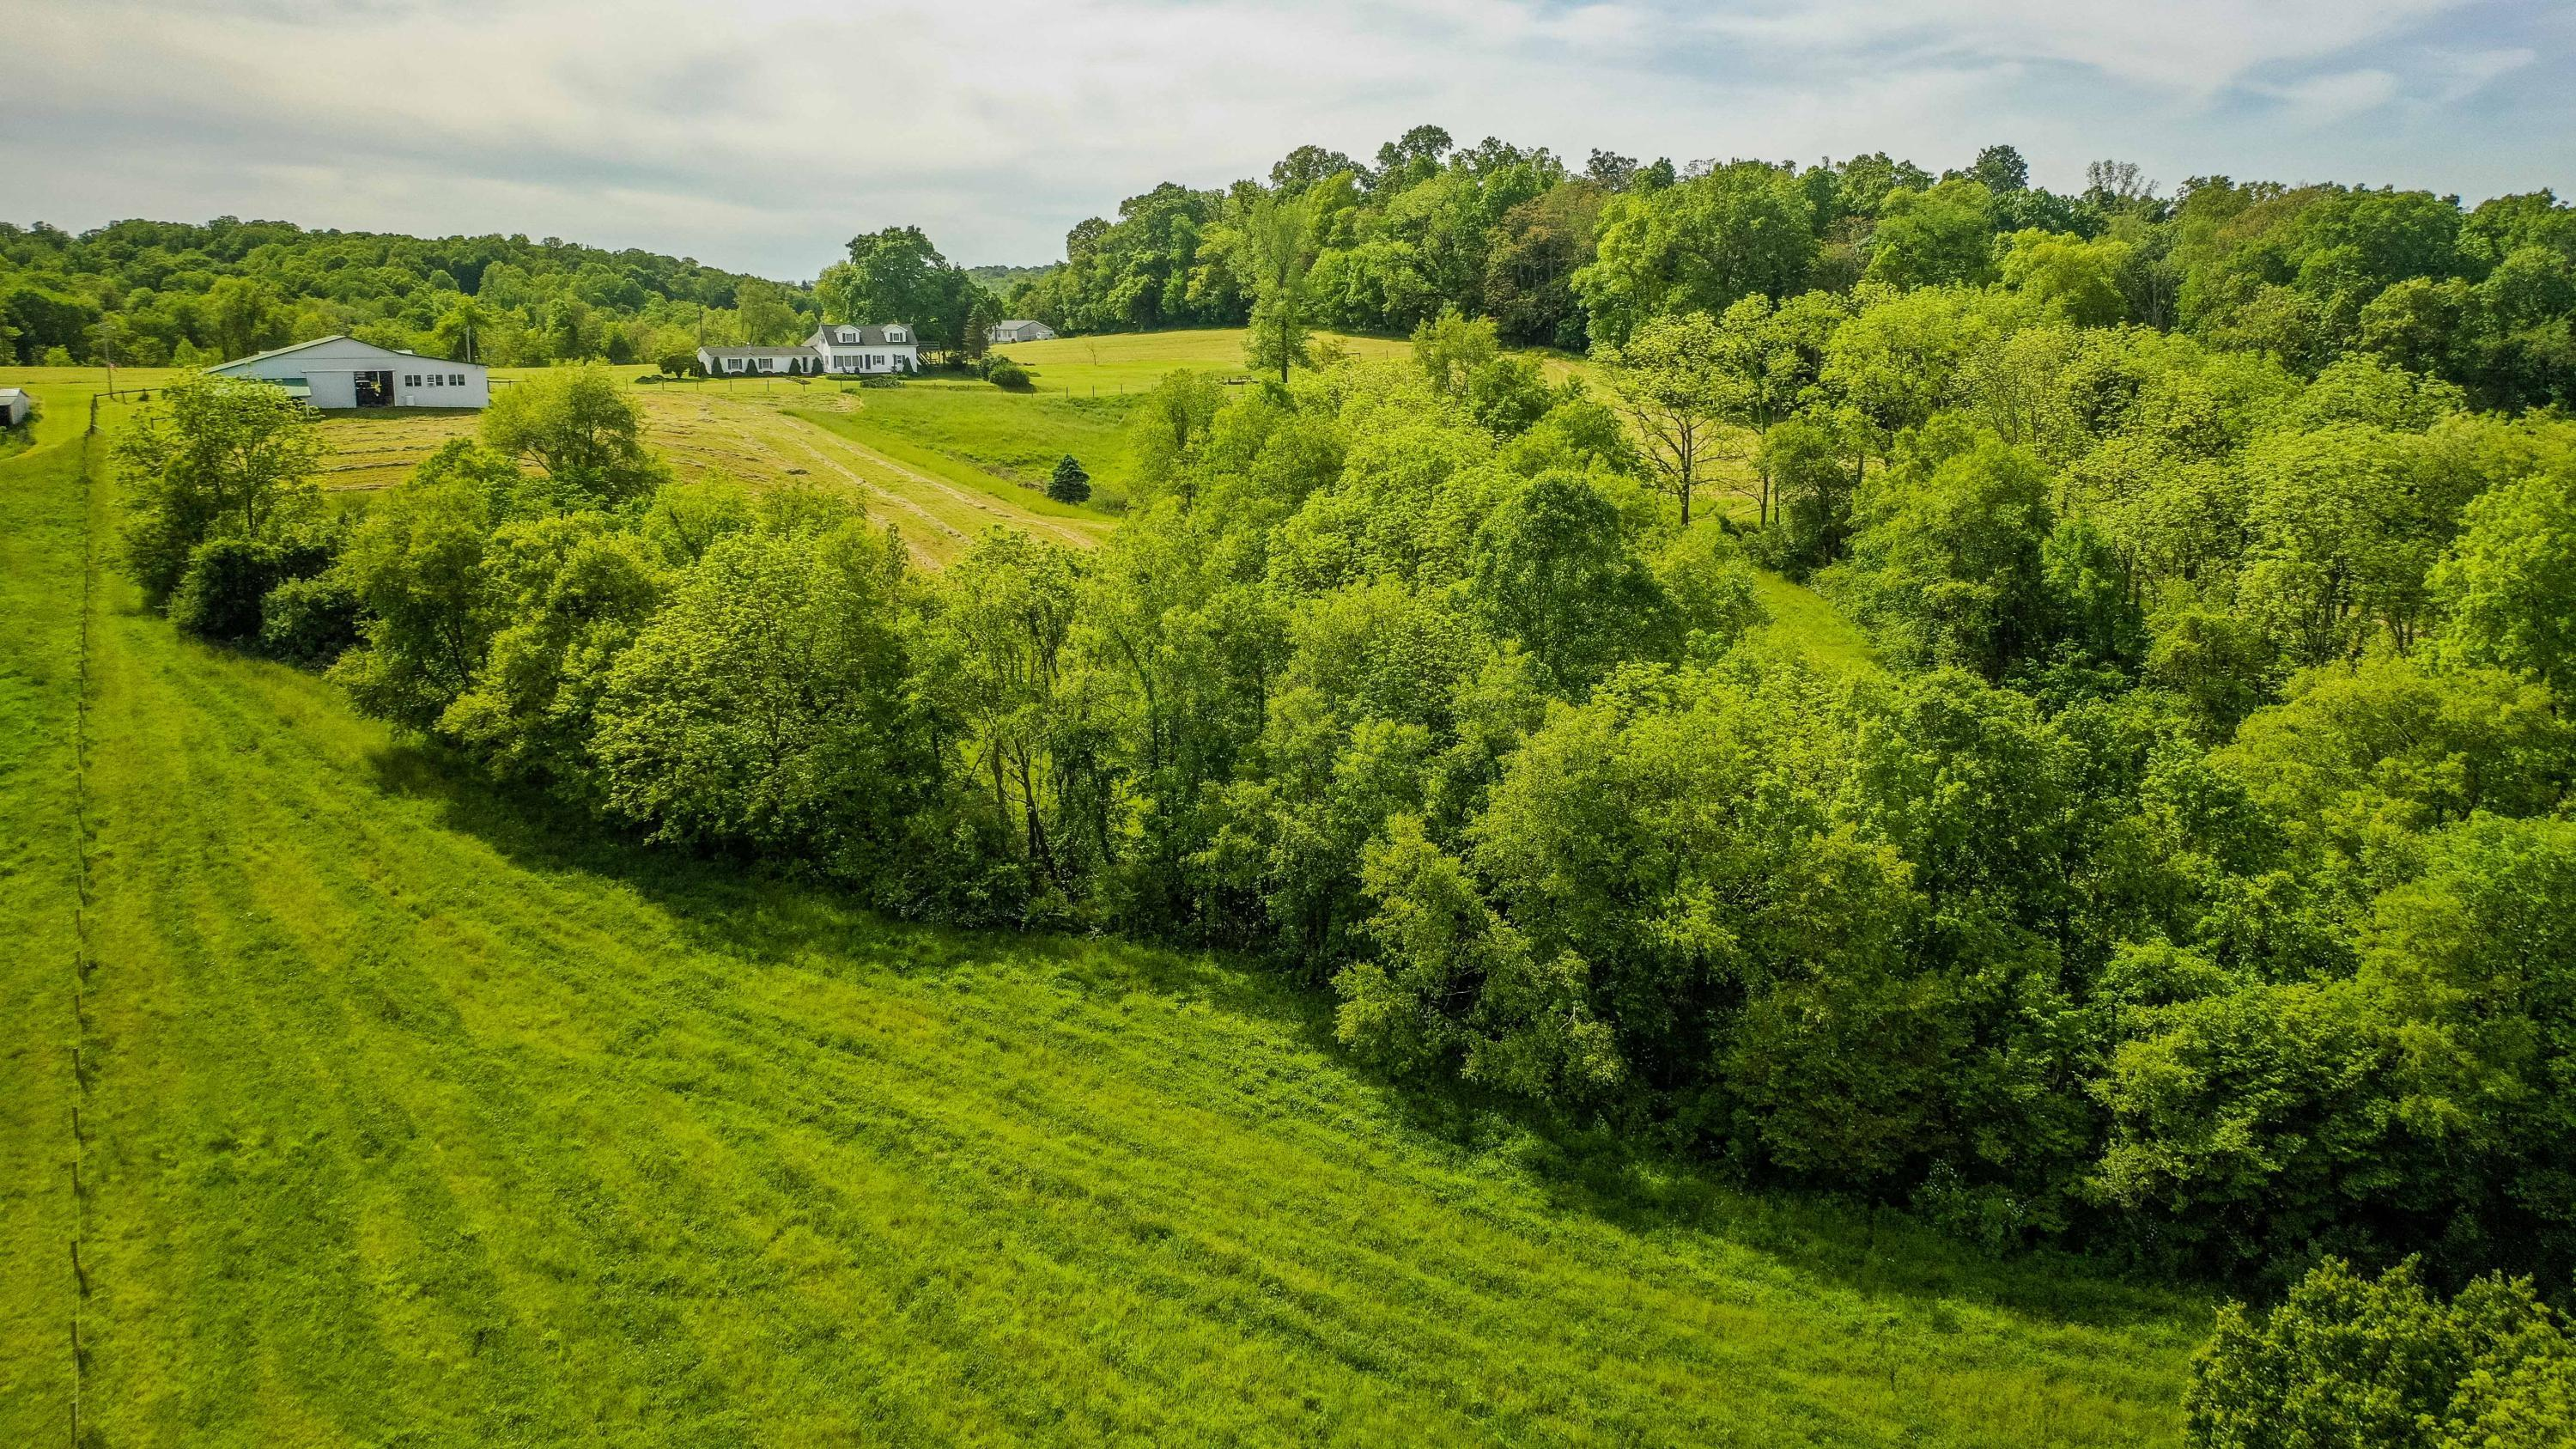 26000 Township Road 26, Coshocton, Ohio 43812, 4 Bedrooms Bedrooms, ,2 BathroomsBathrooms,Residential,For Sale,Township Road 26,220019403